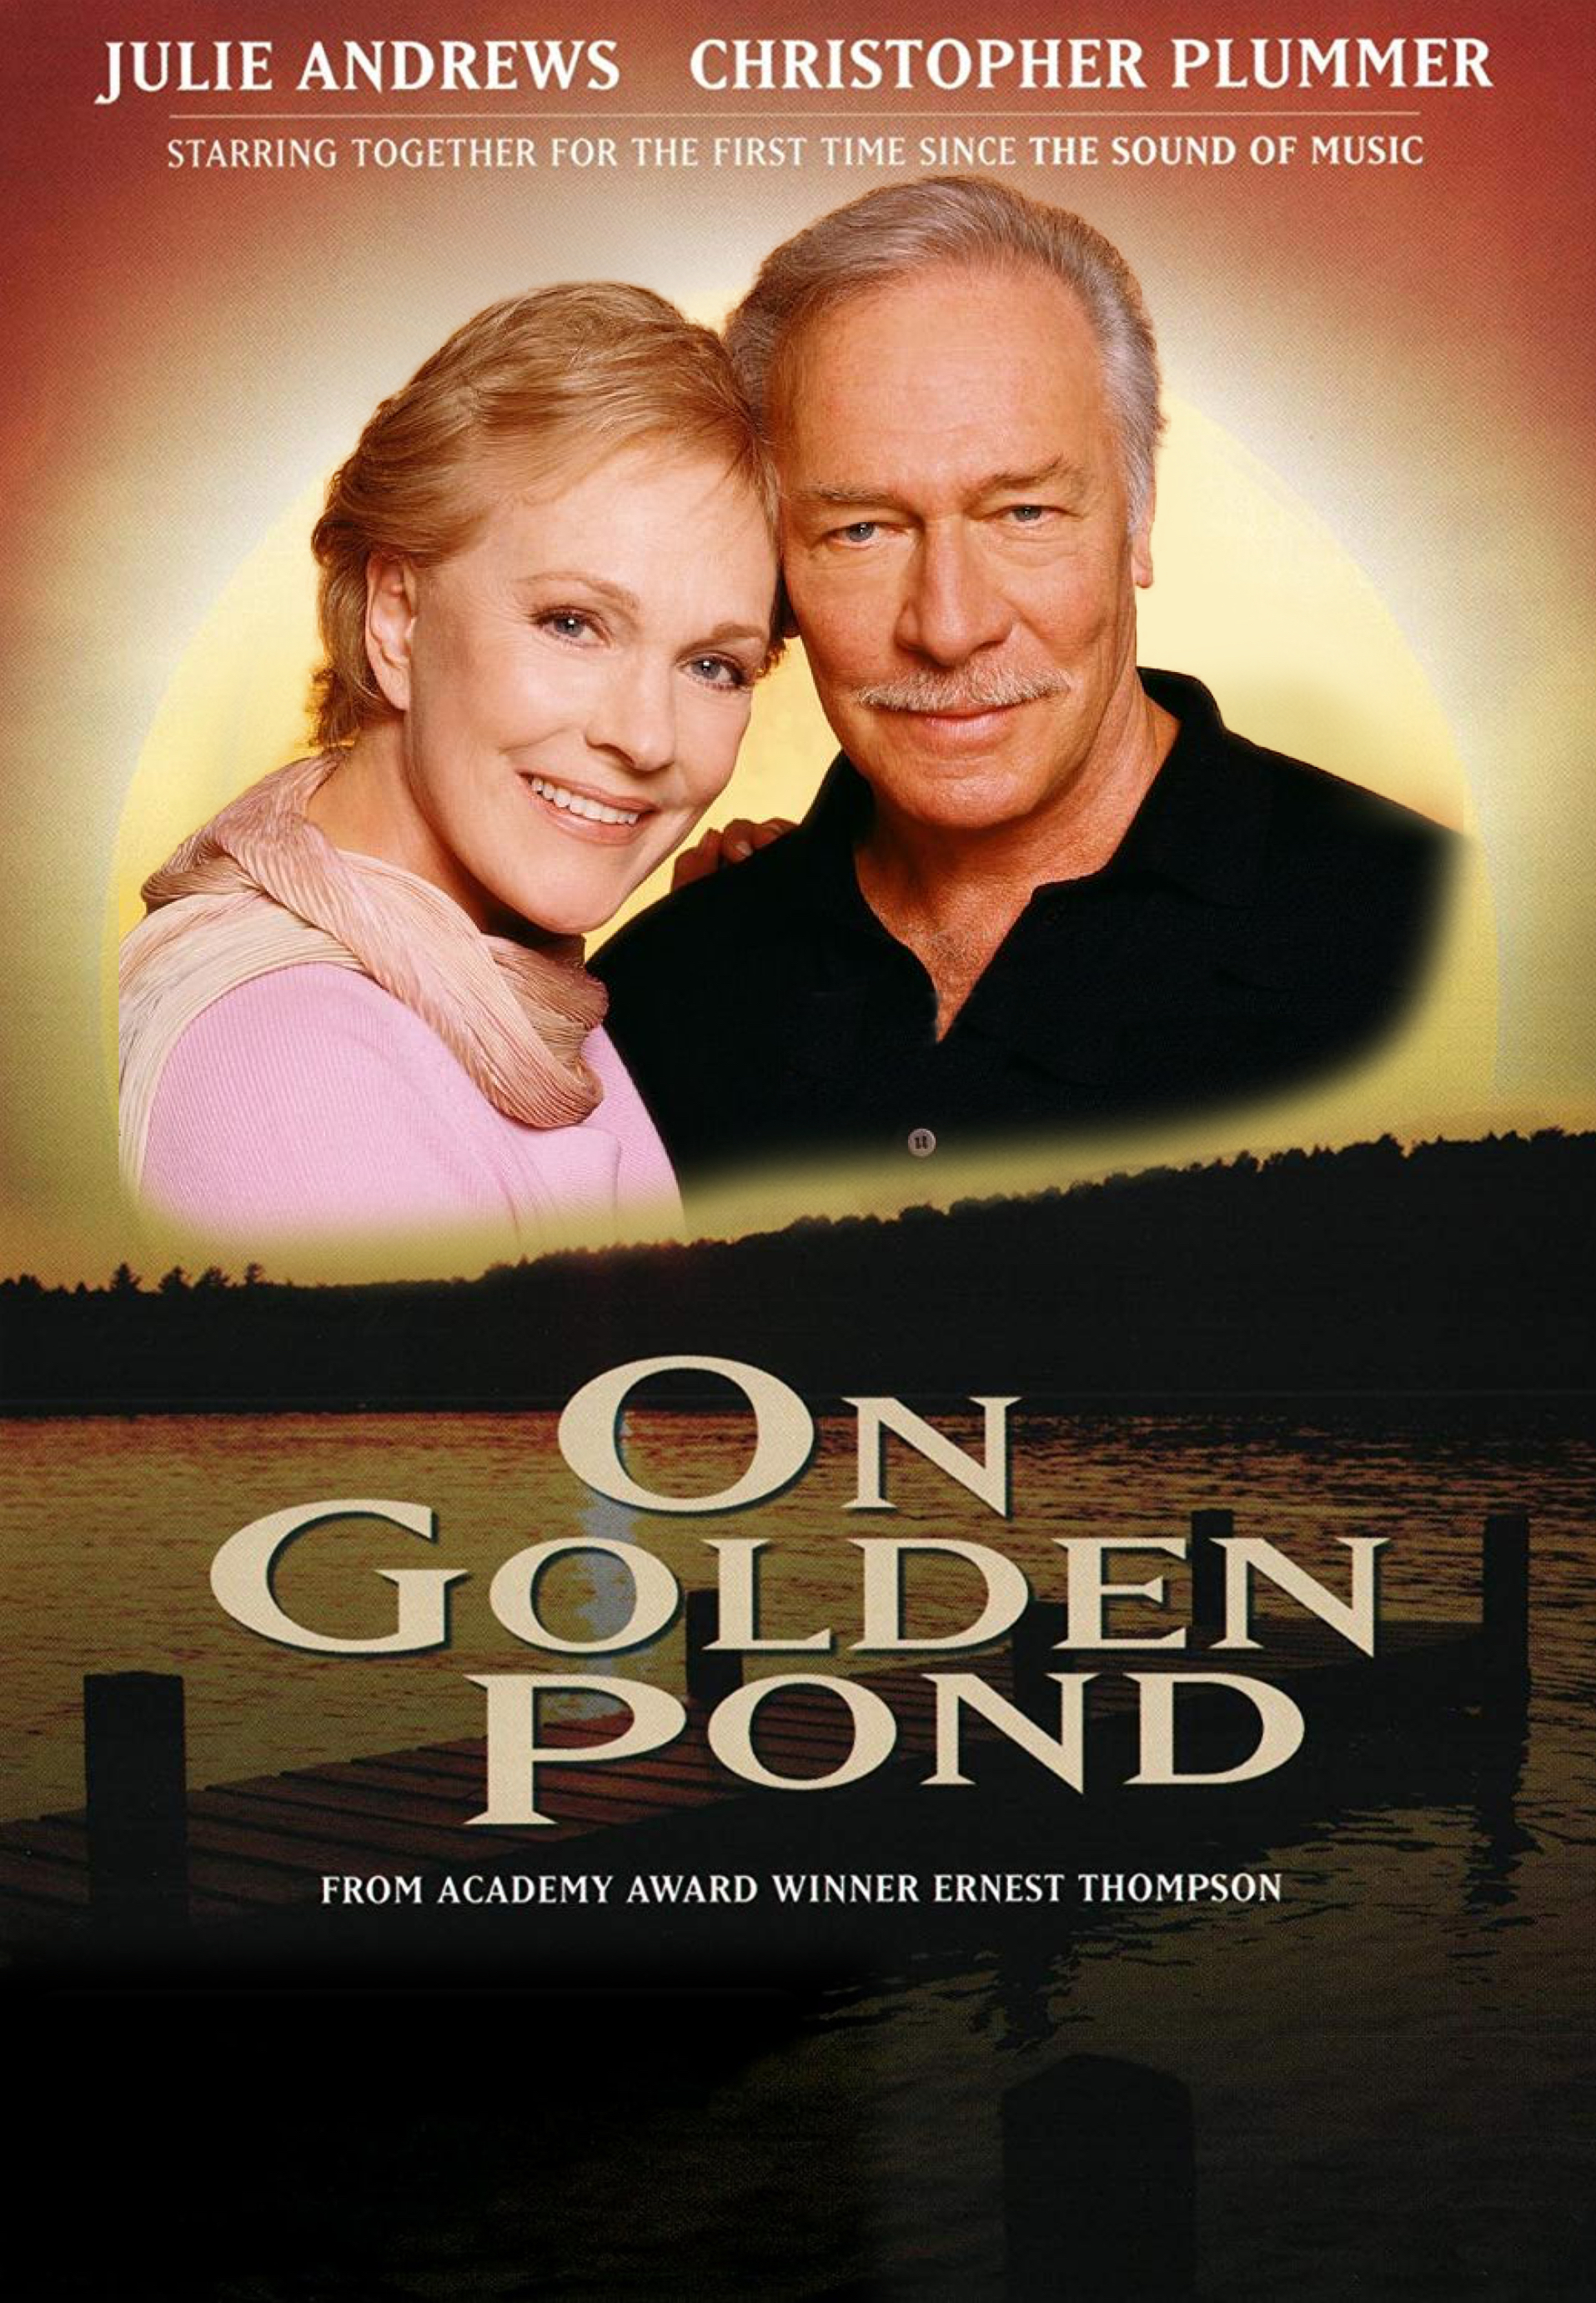 On Golden Pond - Score Catalog Artwork V1_Crop.jpg